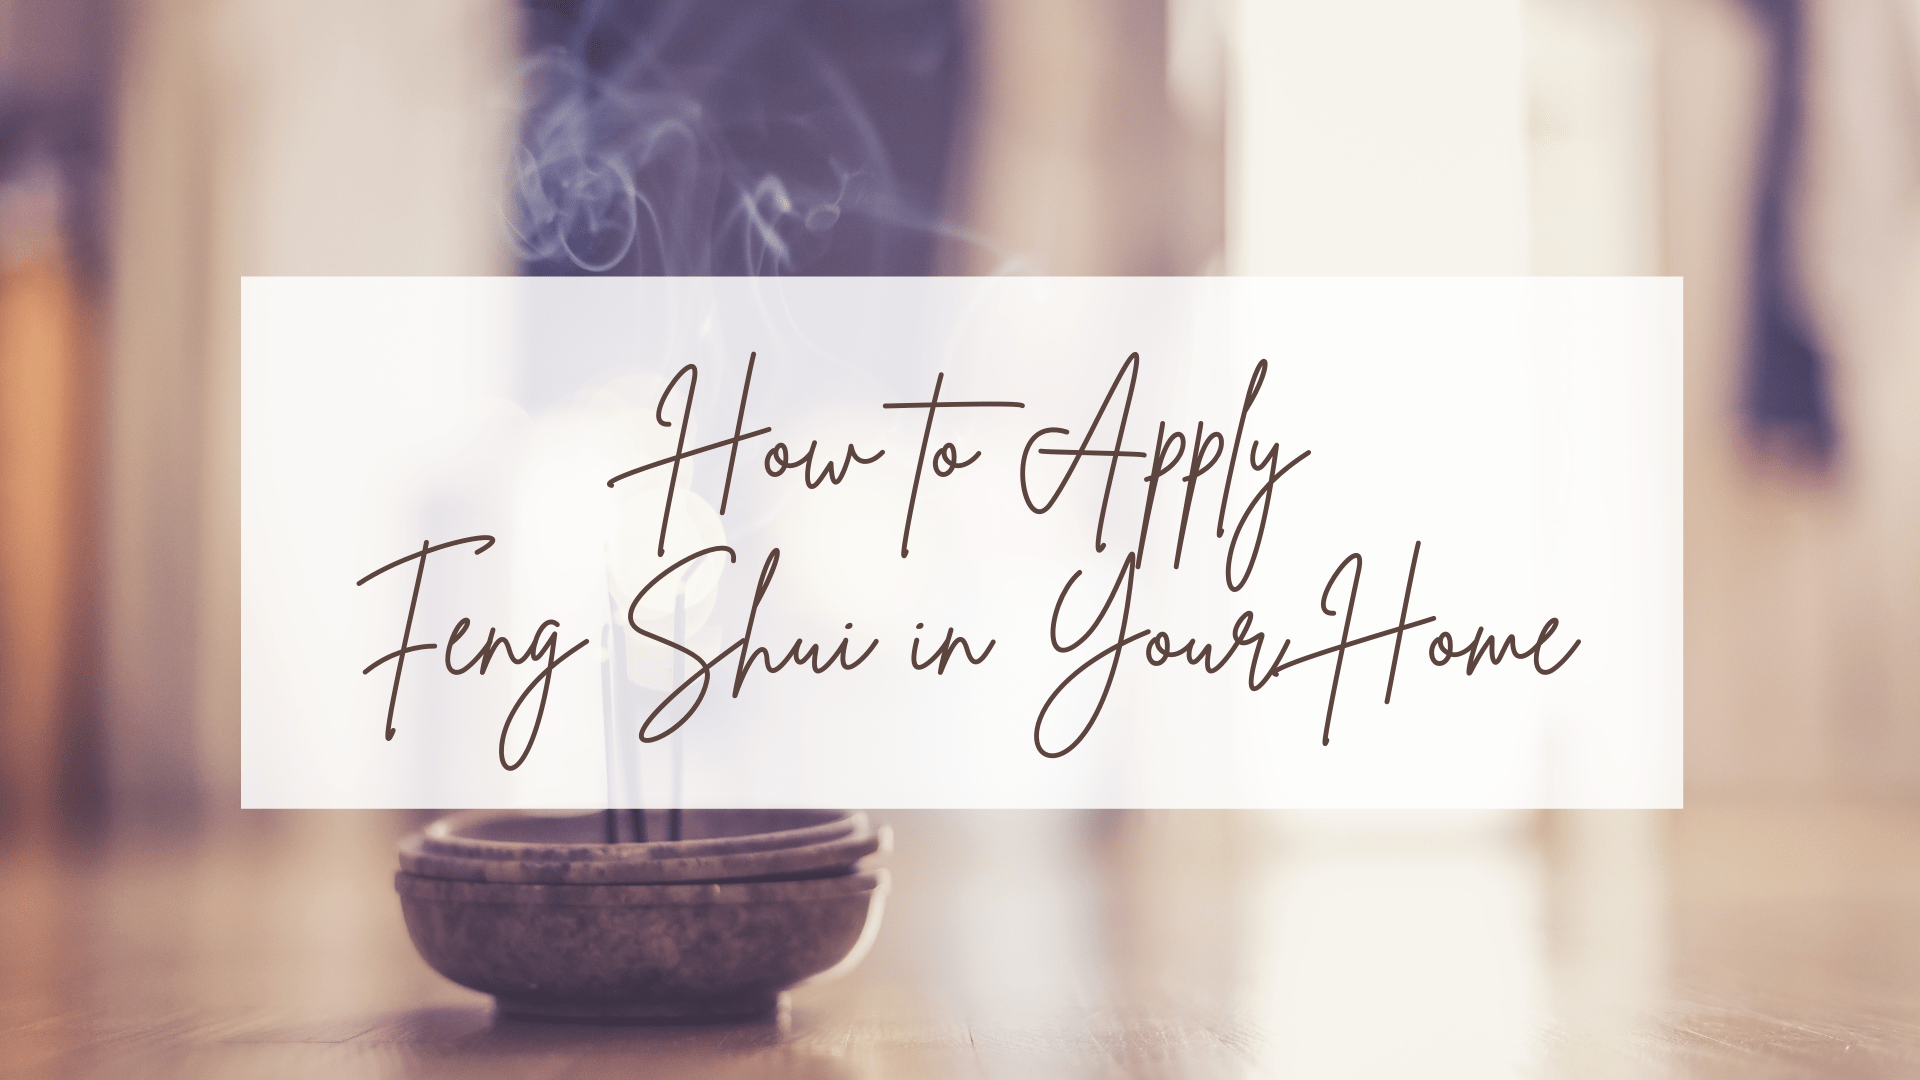 How to Apply Feng Shui in Your Home